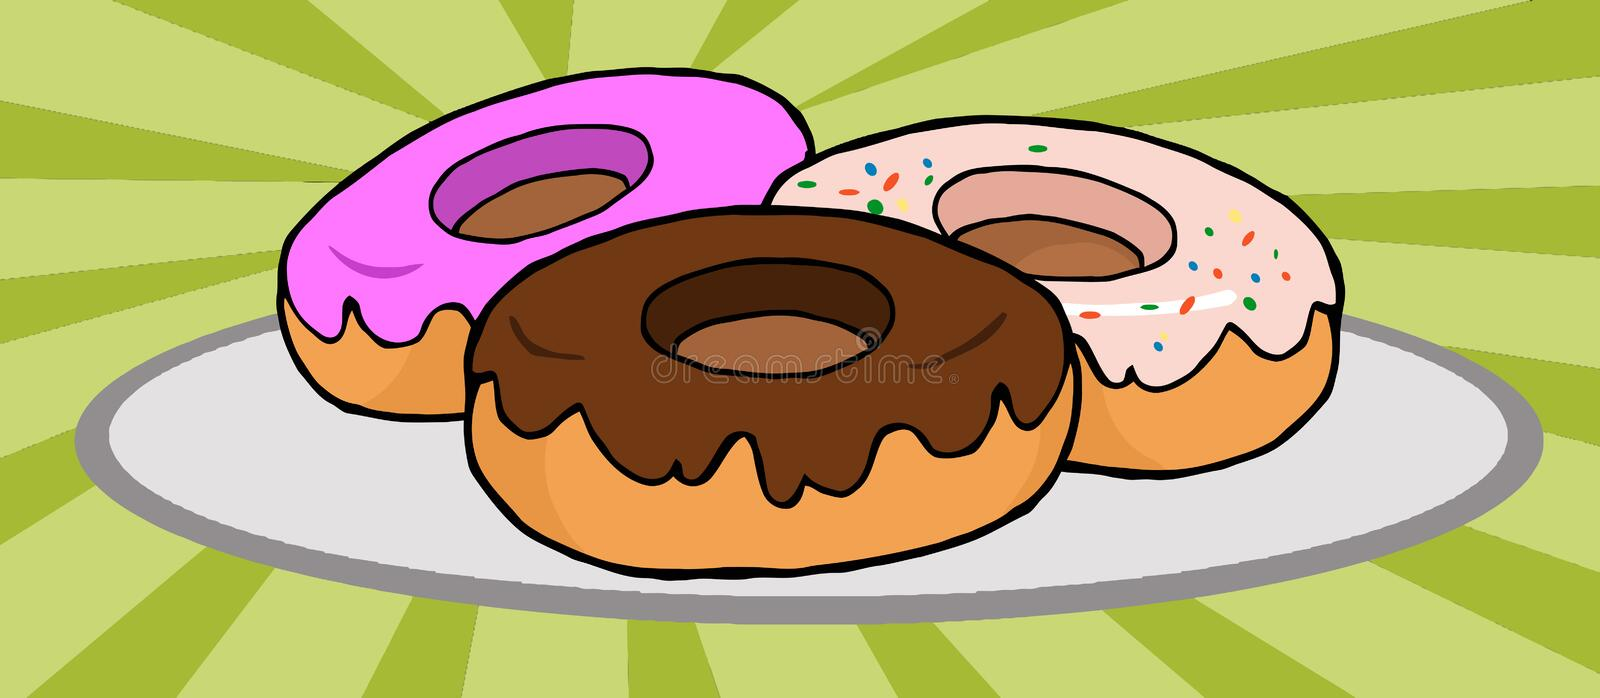 Download Donuts illustrations stock vector. Illustration of pictures - 17058823